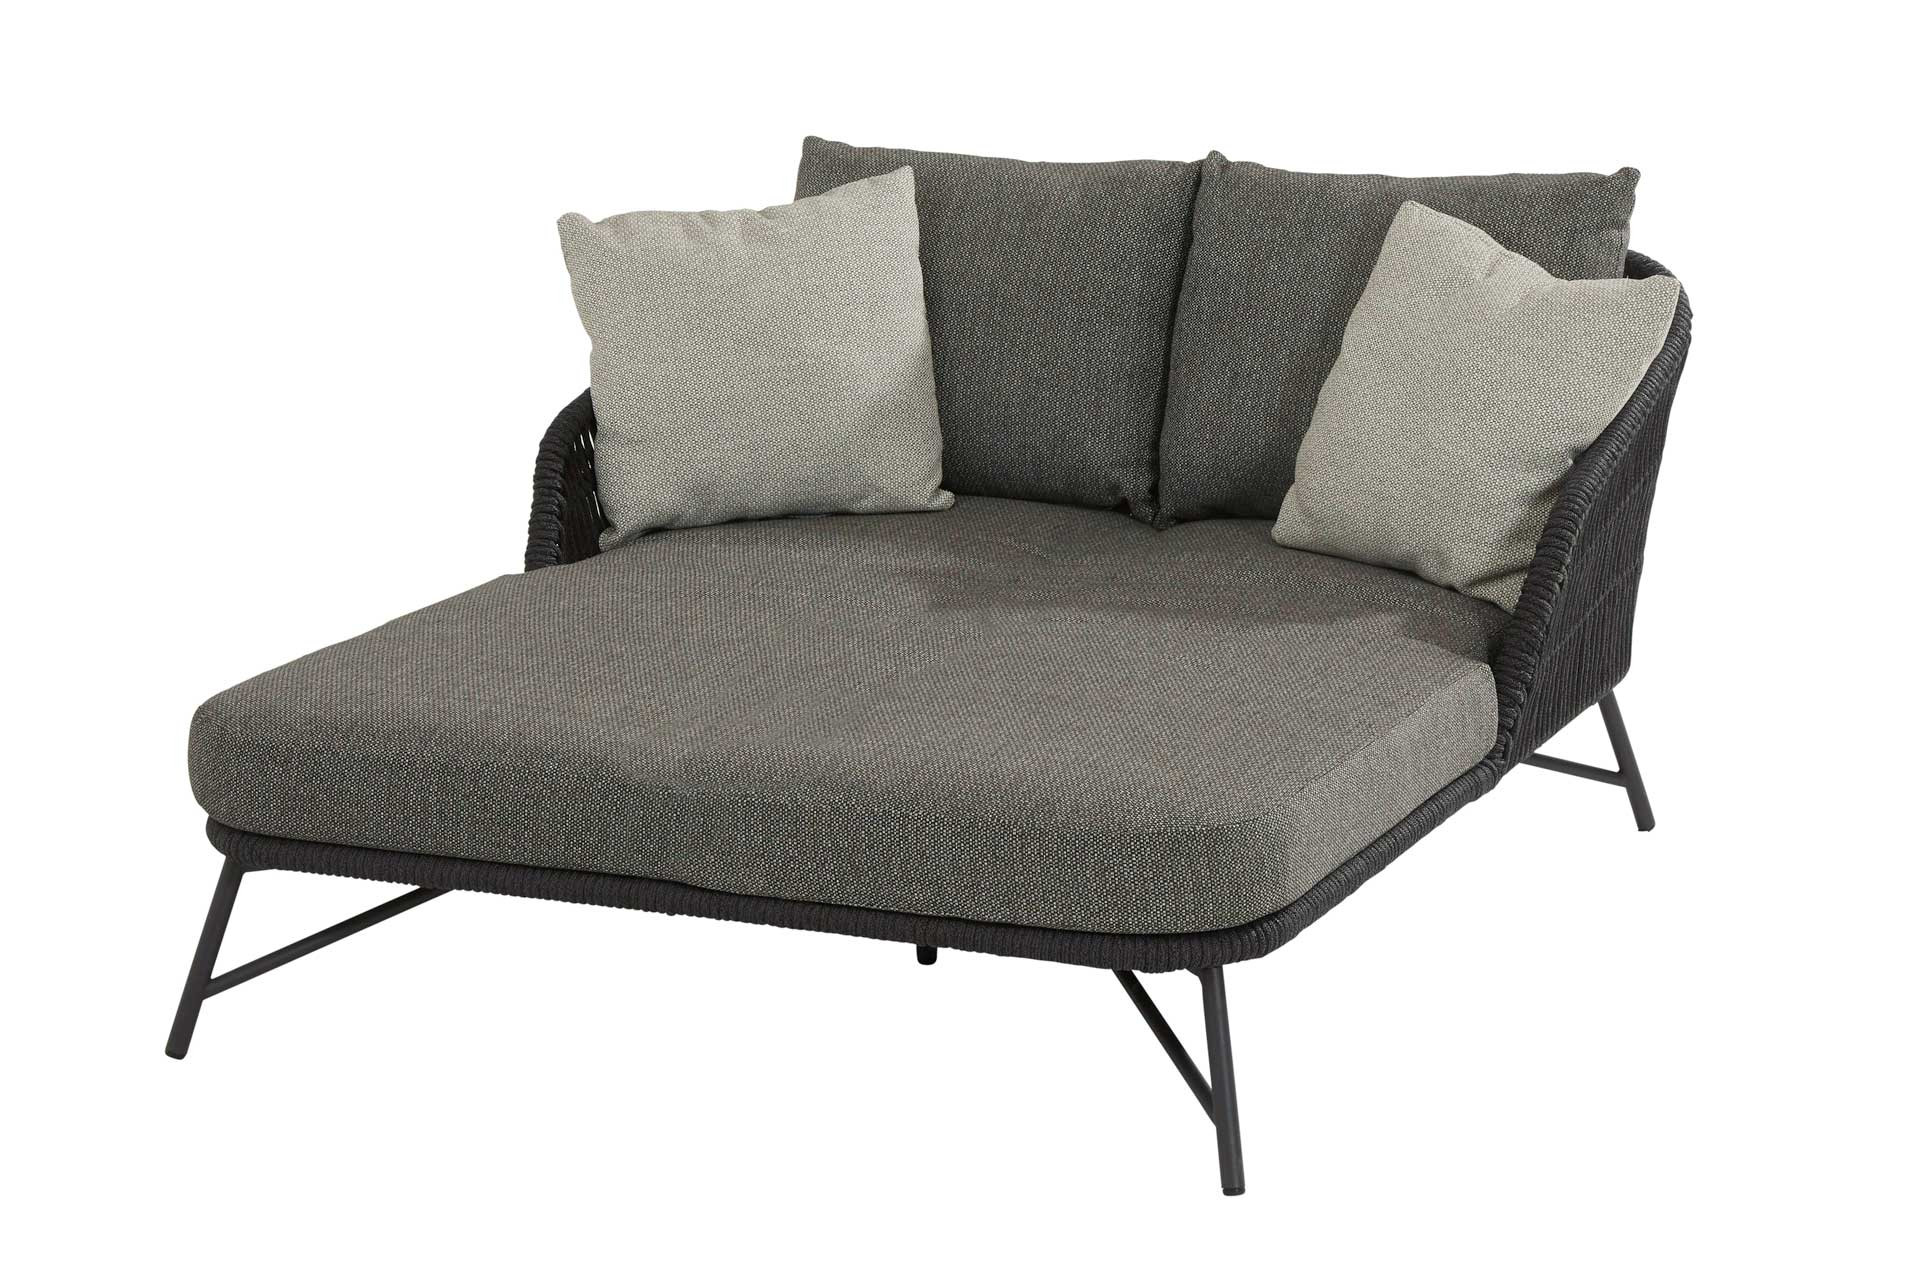 Marbella daybed with 5 cushions